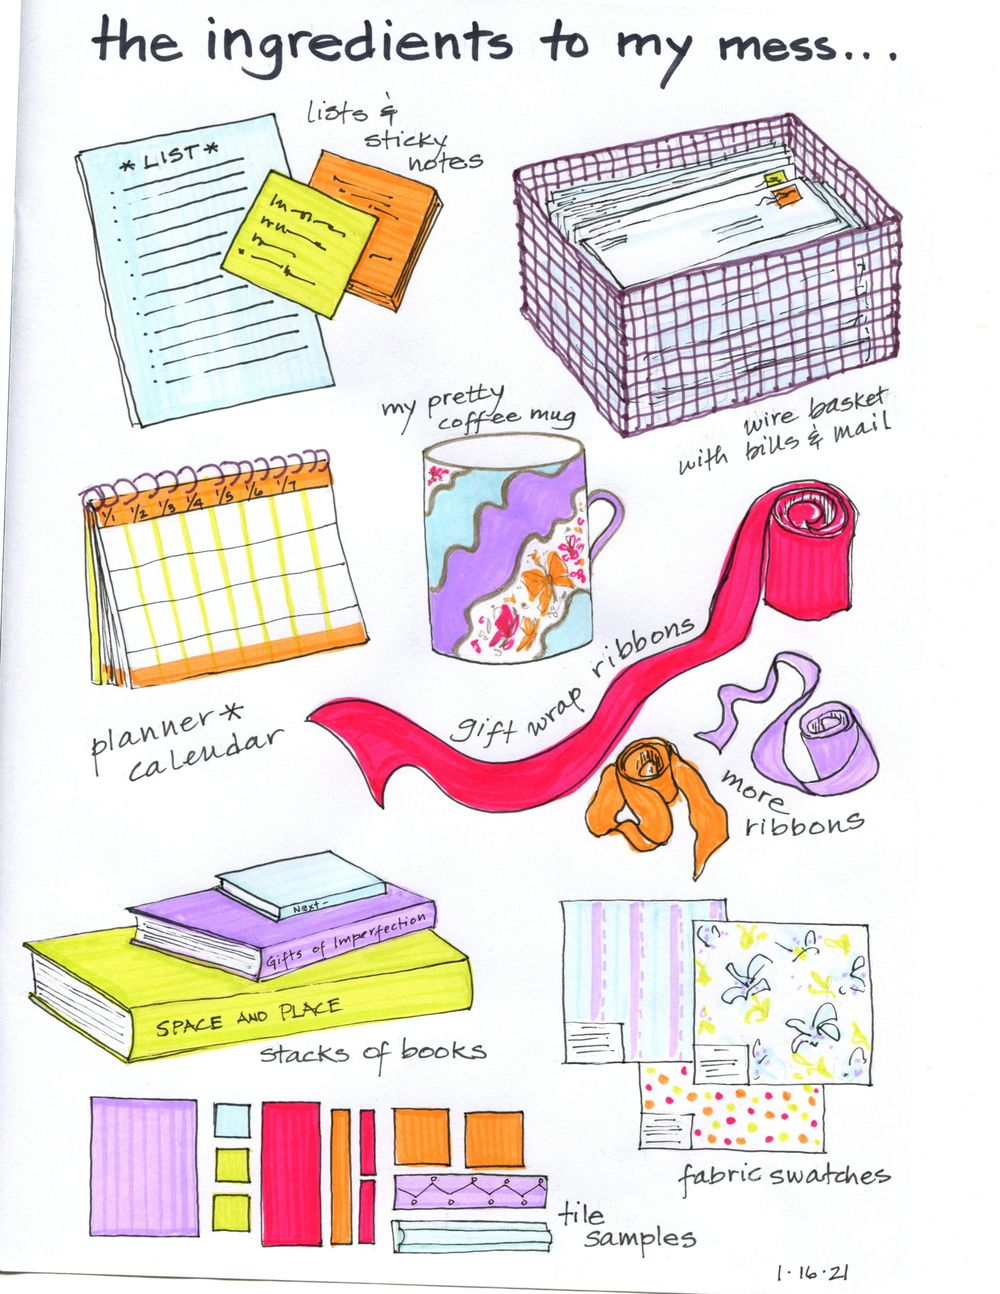 my 14-day illustrated journal - image 6 - student project